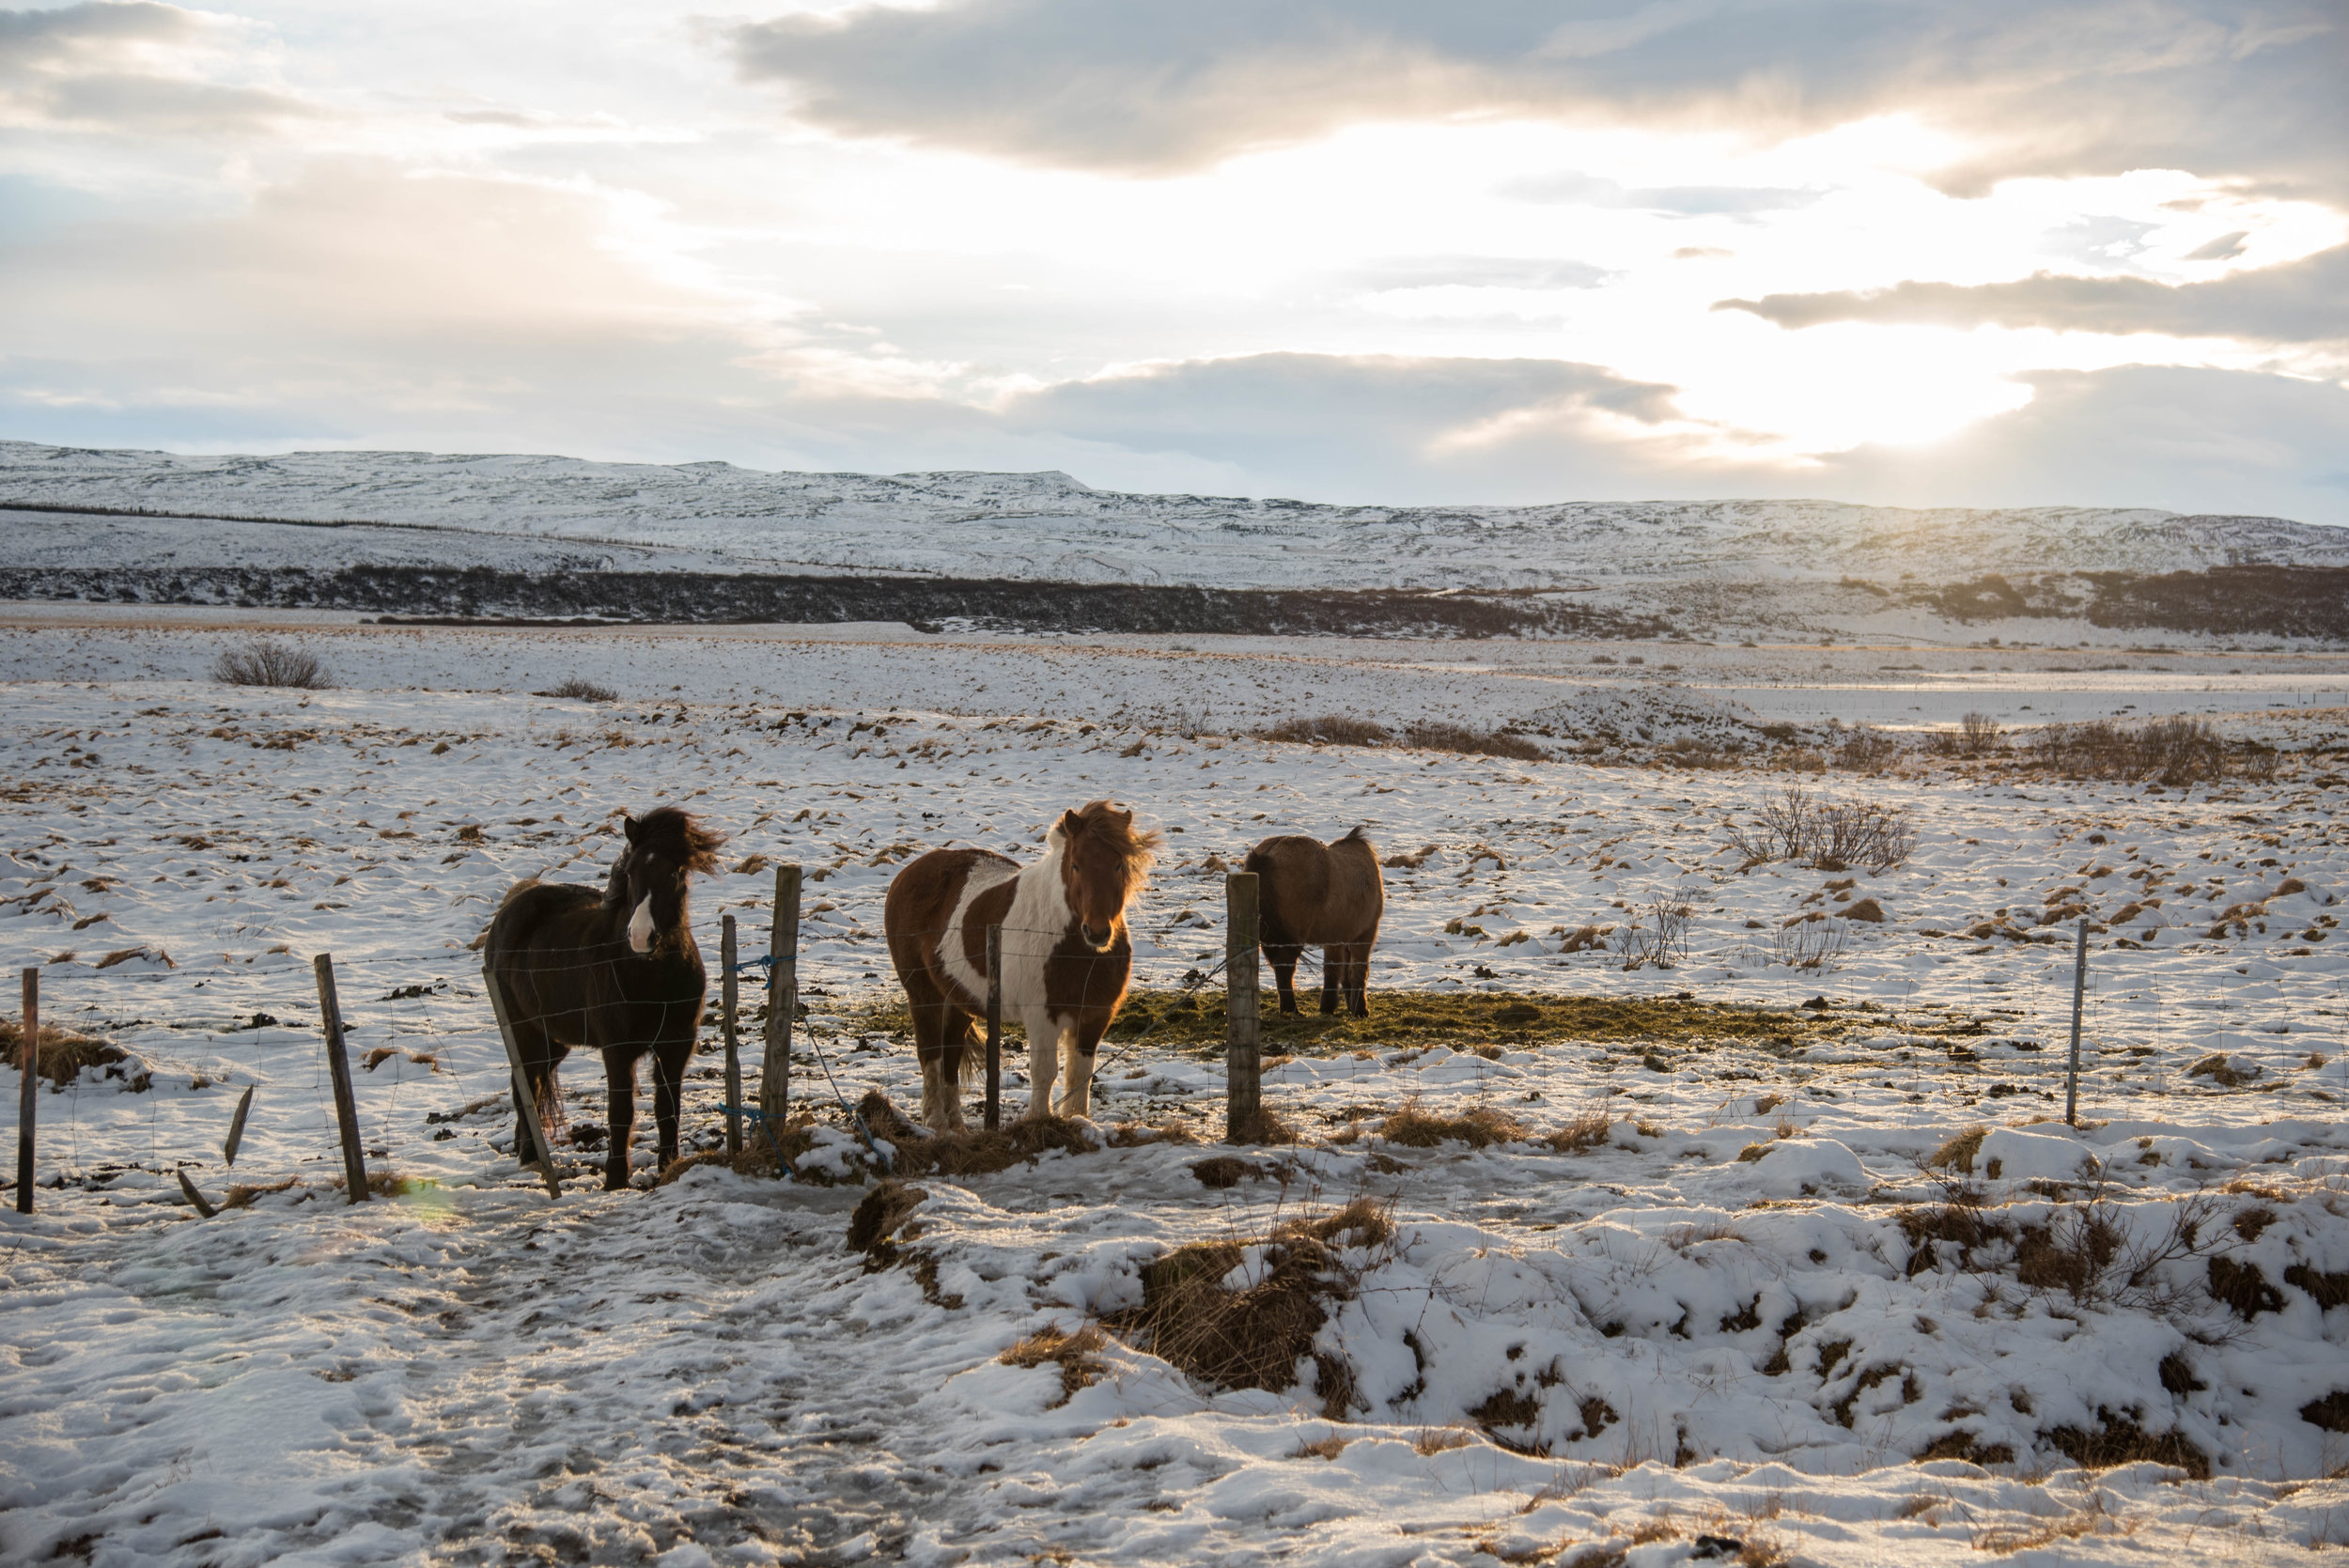 ROSE & IVY Journal Escape to Iceland All the Wild Horses